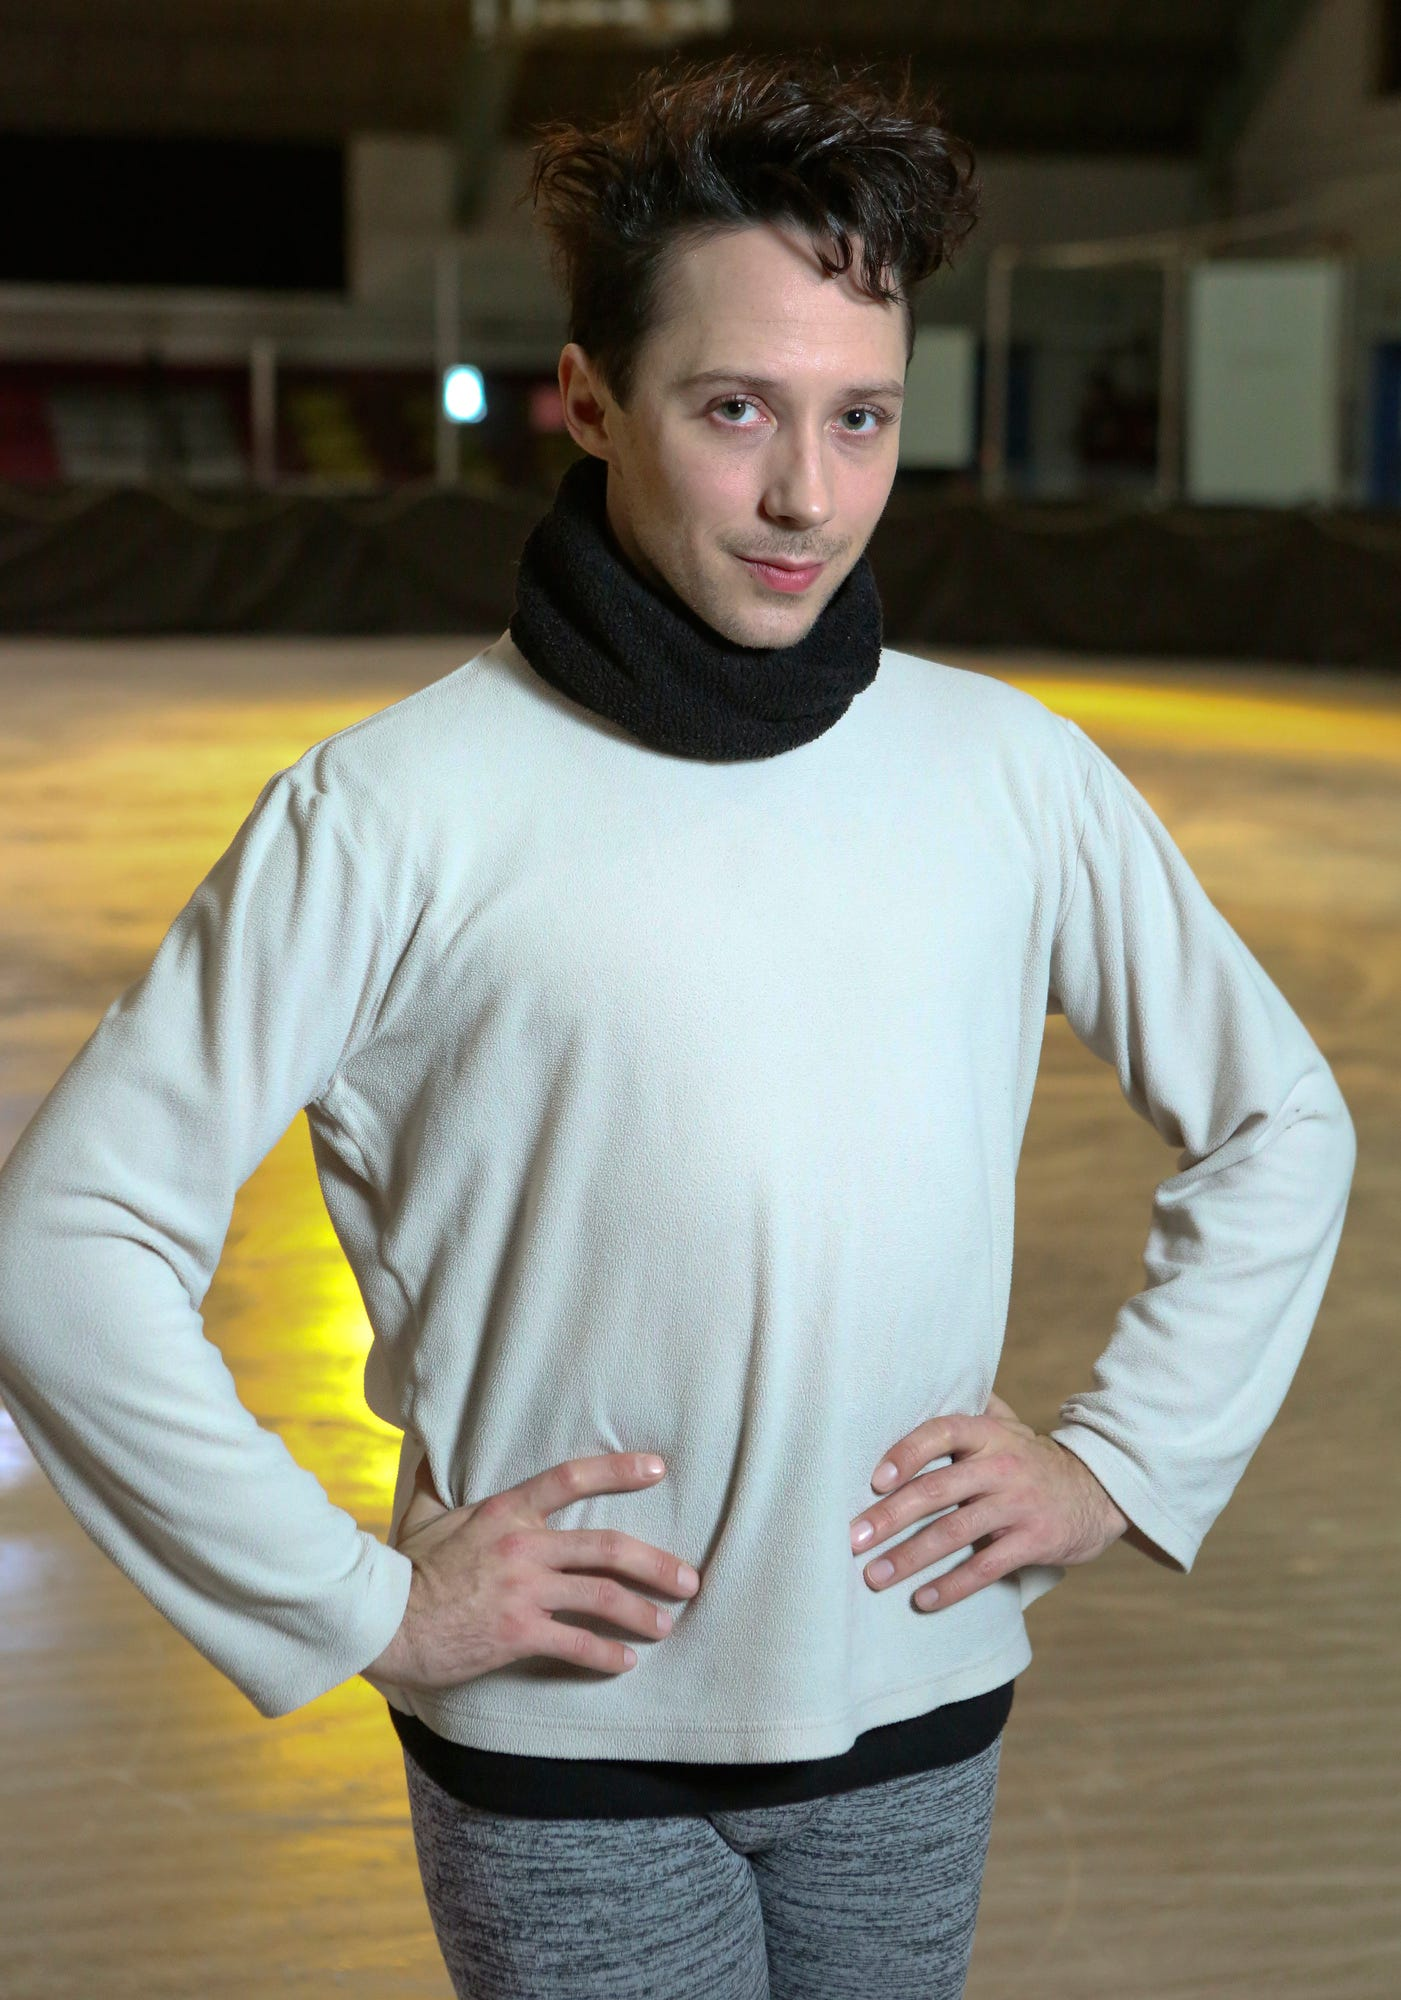 Johnny Weir Retires from Skating, Joins NBC for the Sochi Olympics